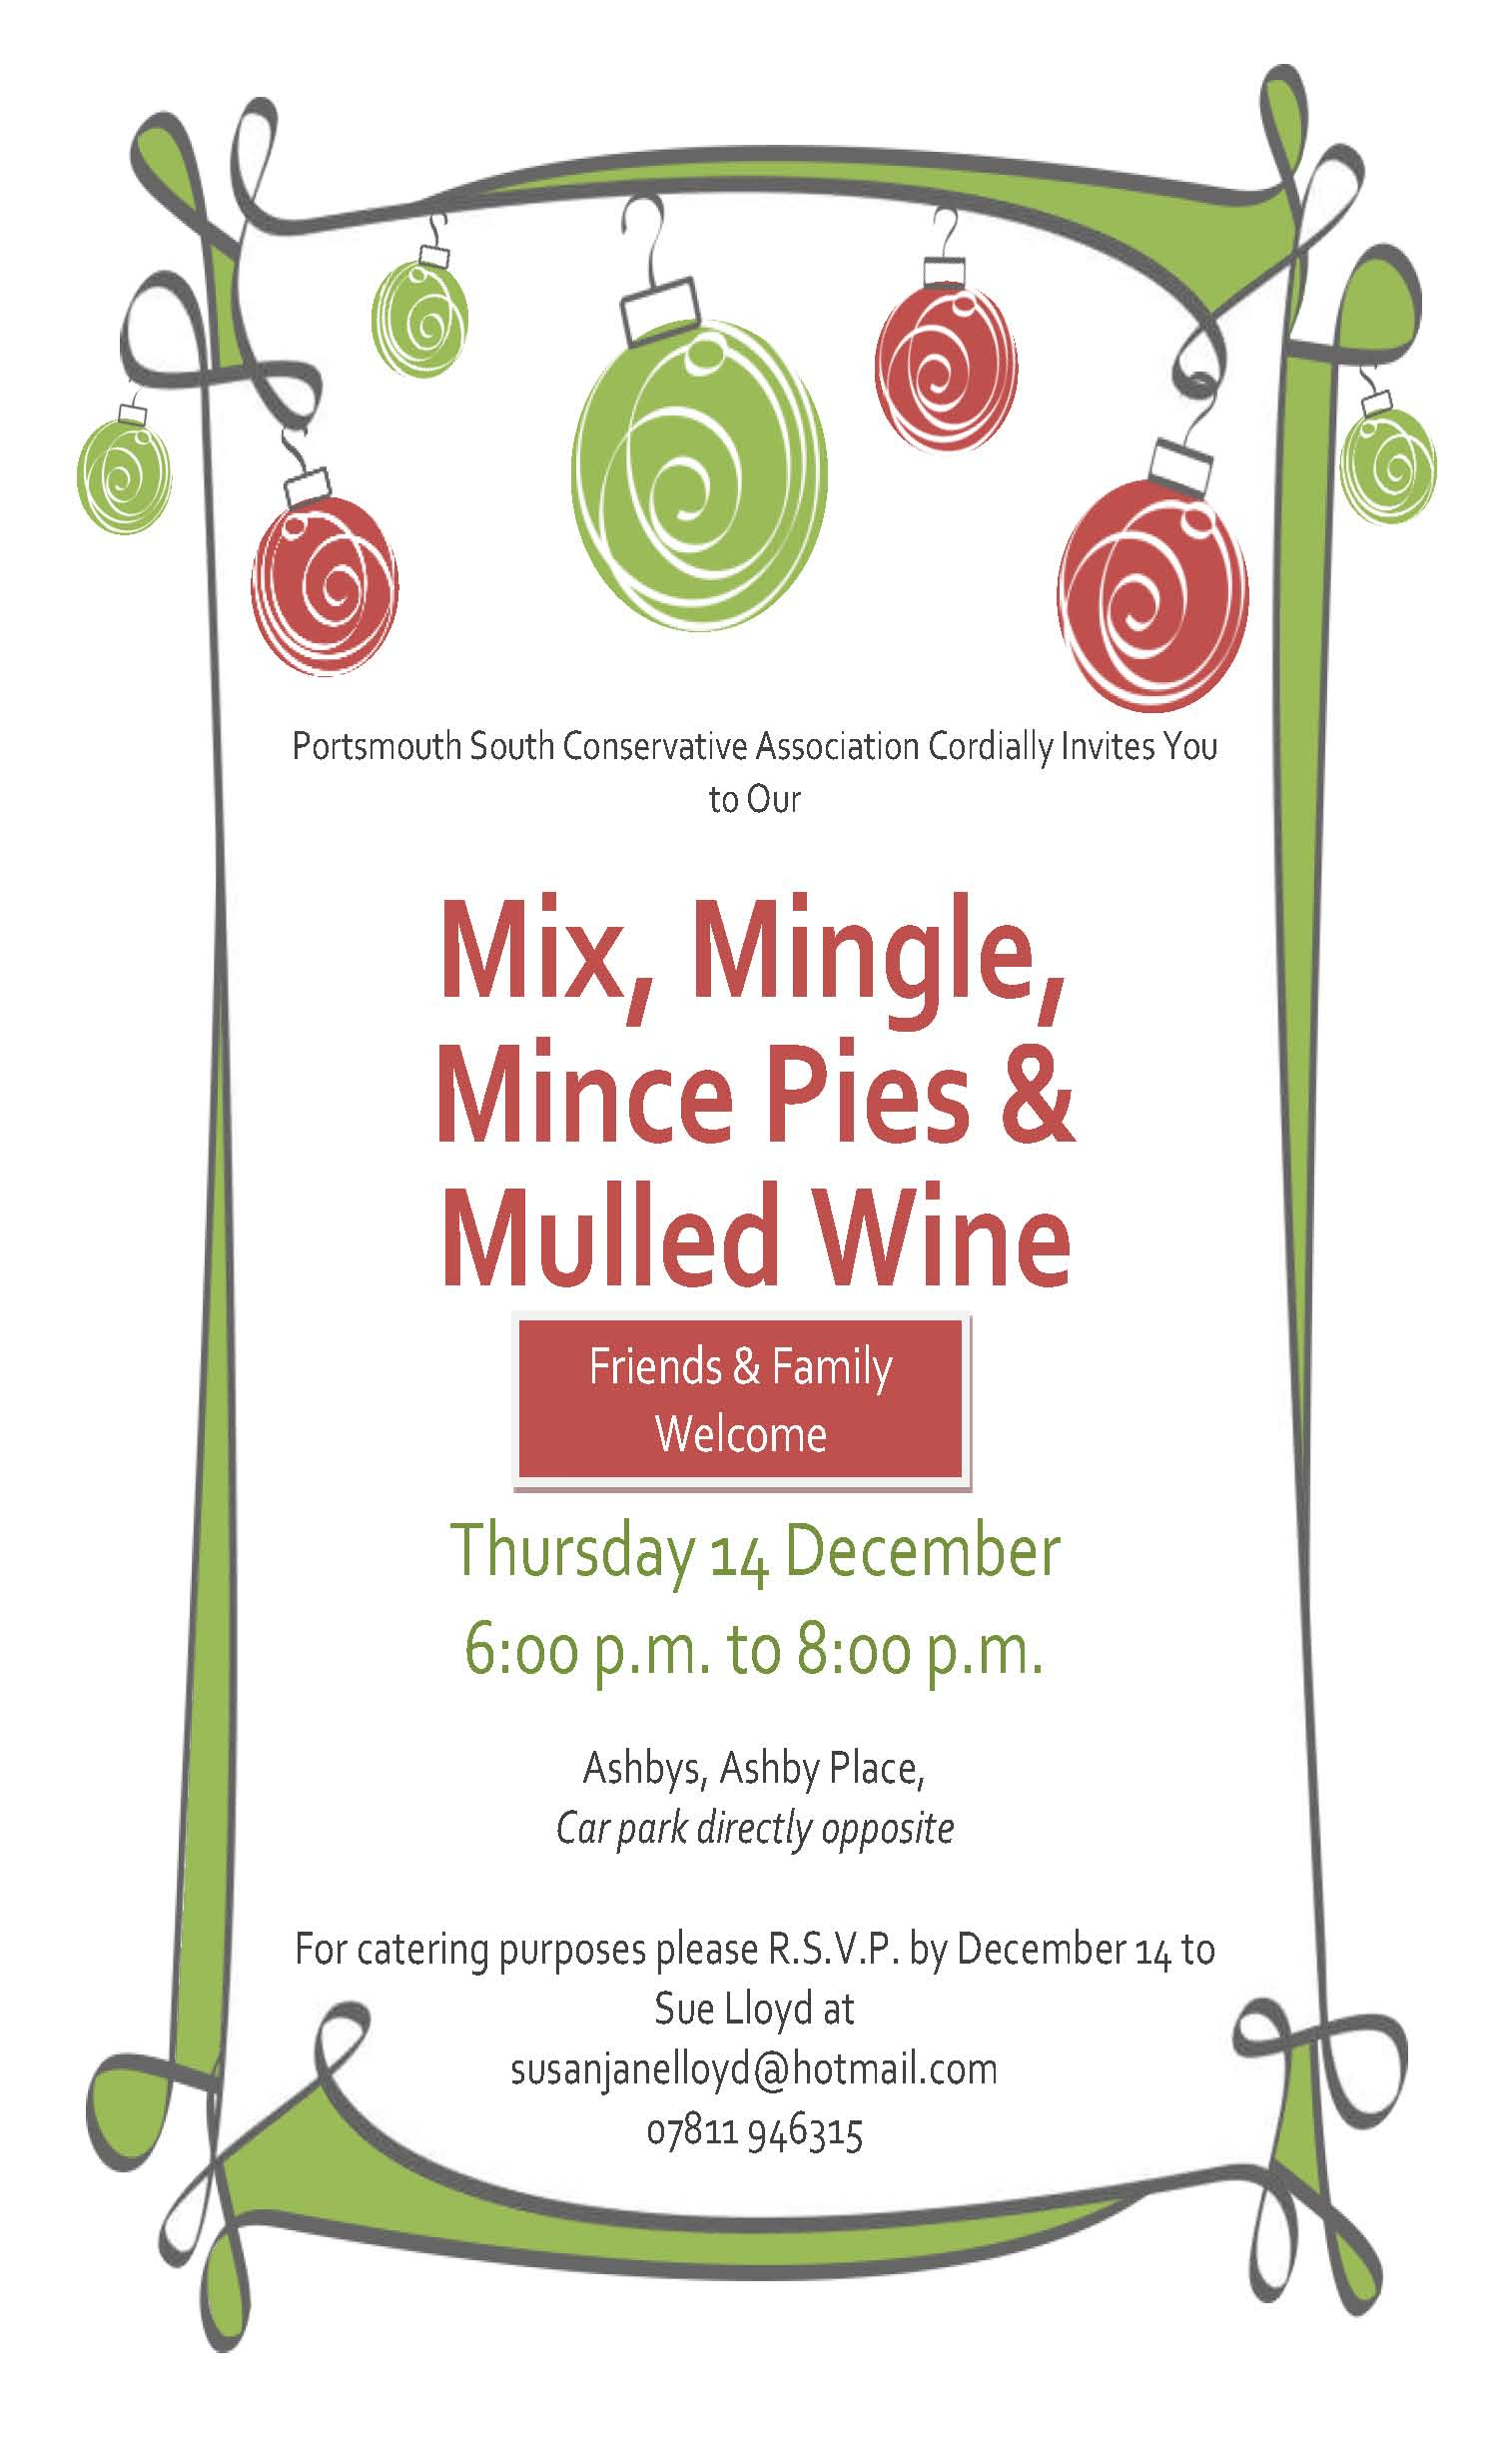 Xmas mix and mingle event